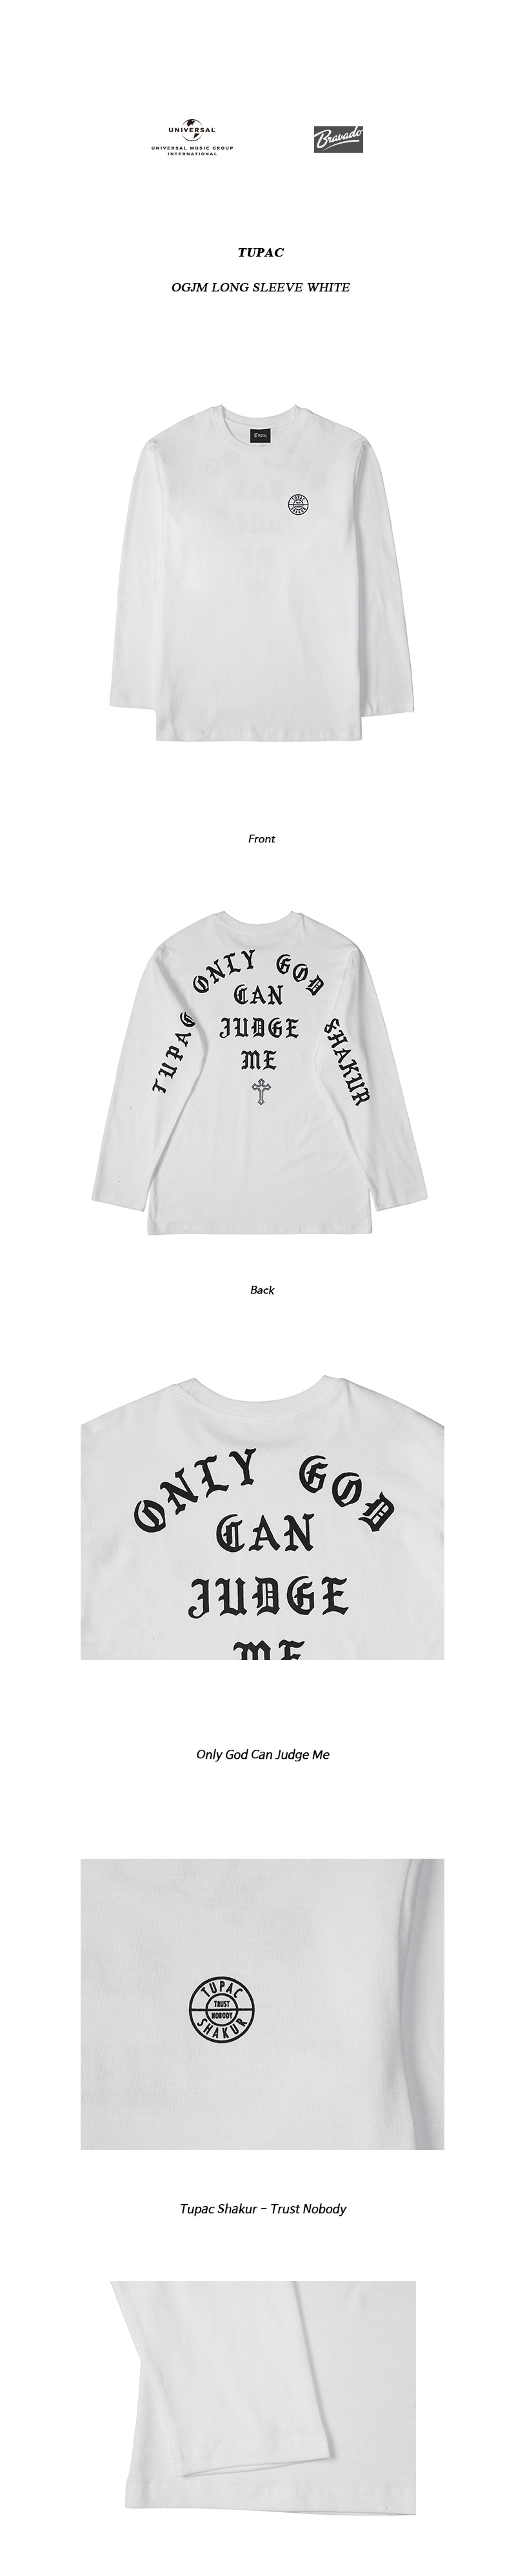 브라바도 TUPAC OGJM LONG SLEEVE WHITE